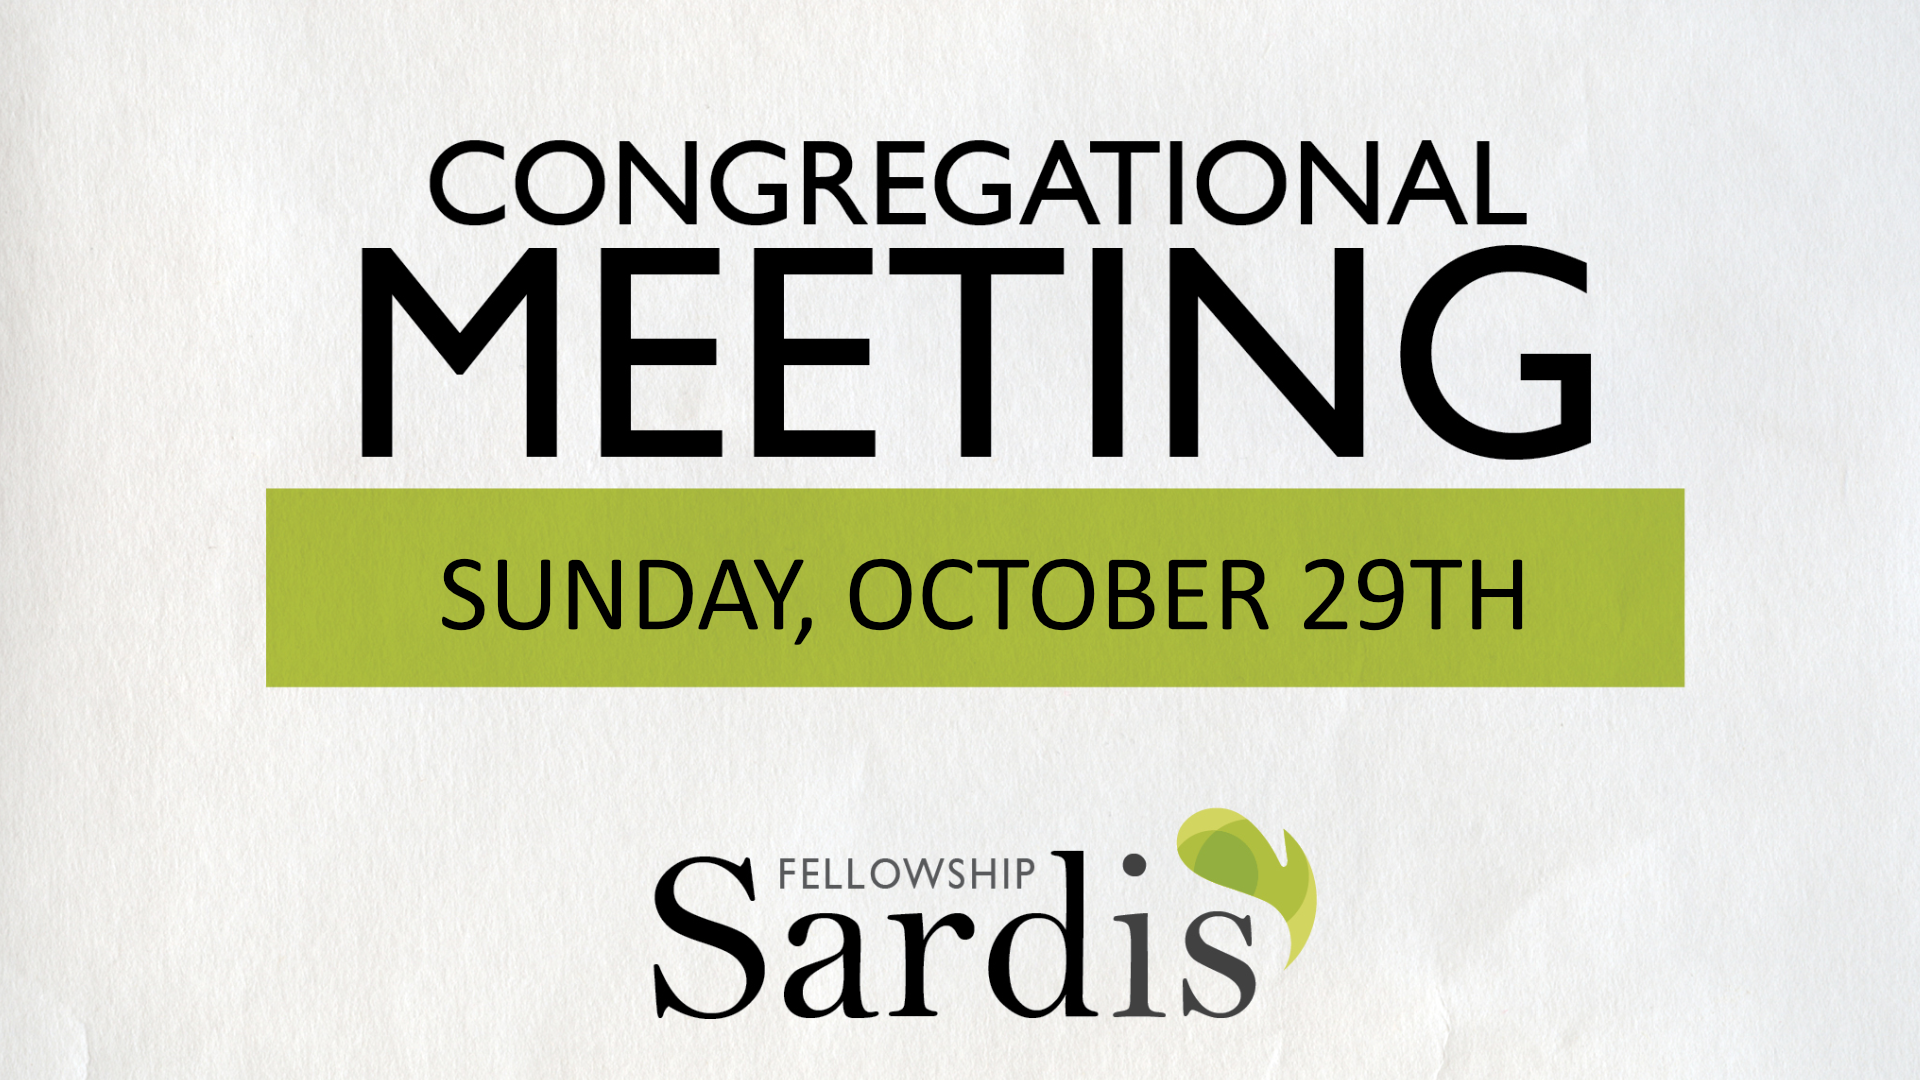 Congregational Meeting Power Point-October 29th, 2017.png